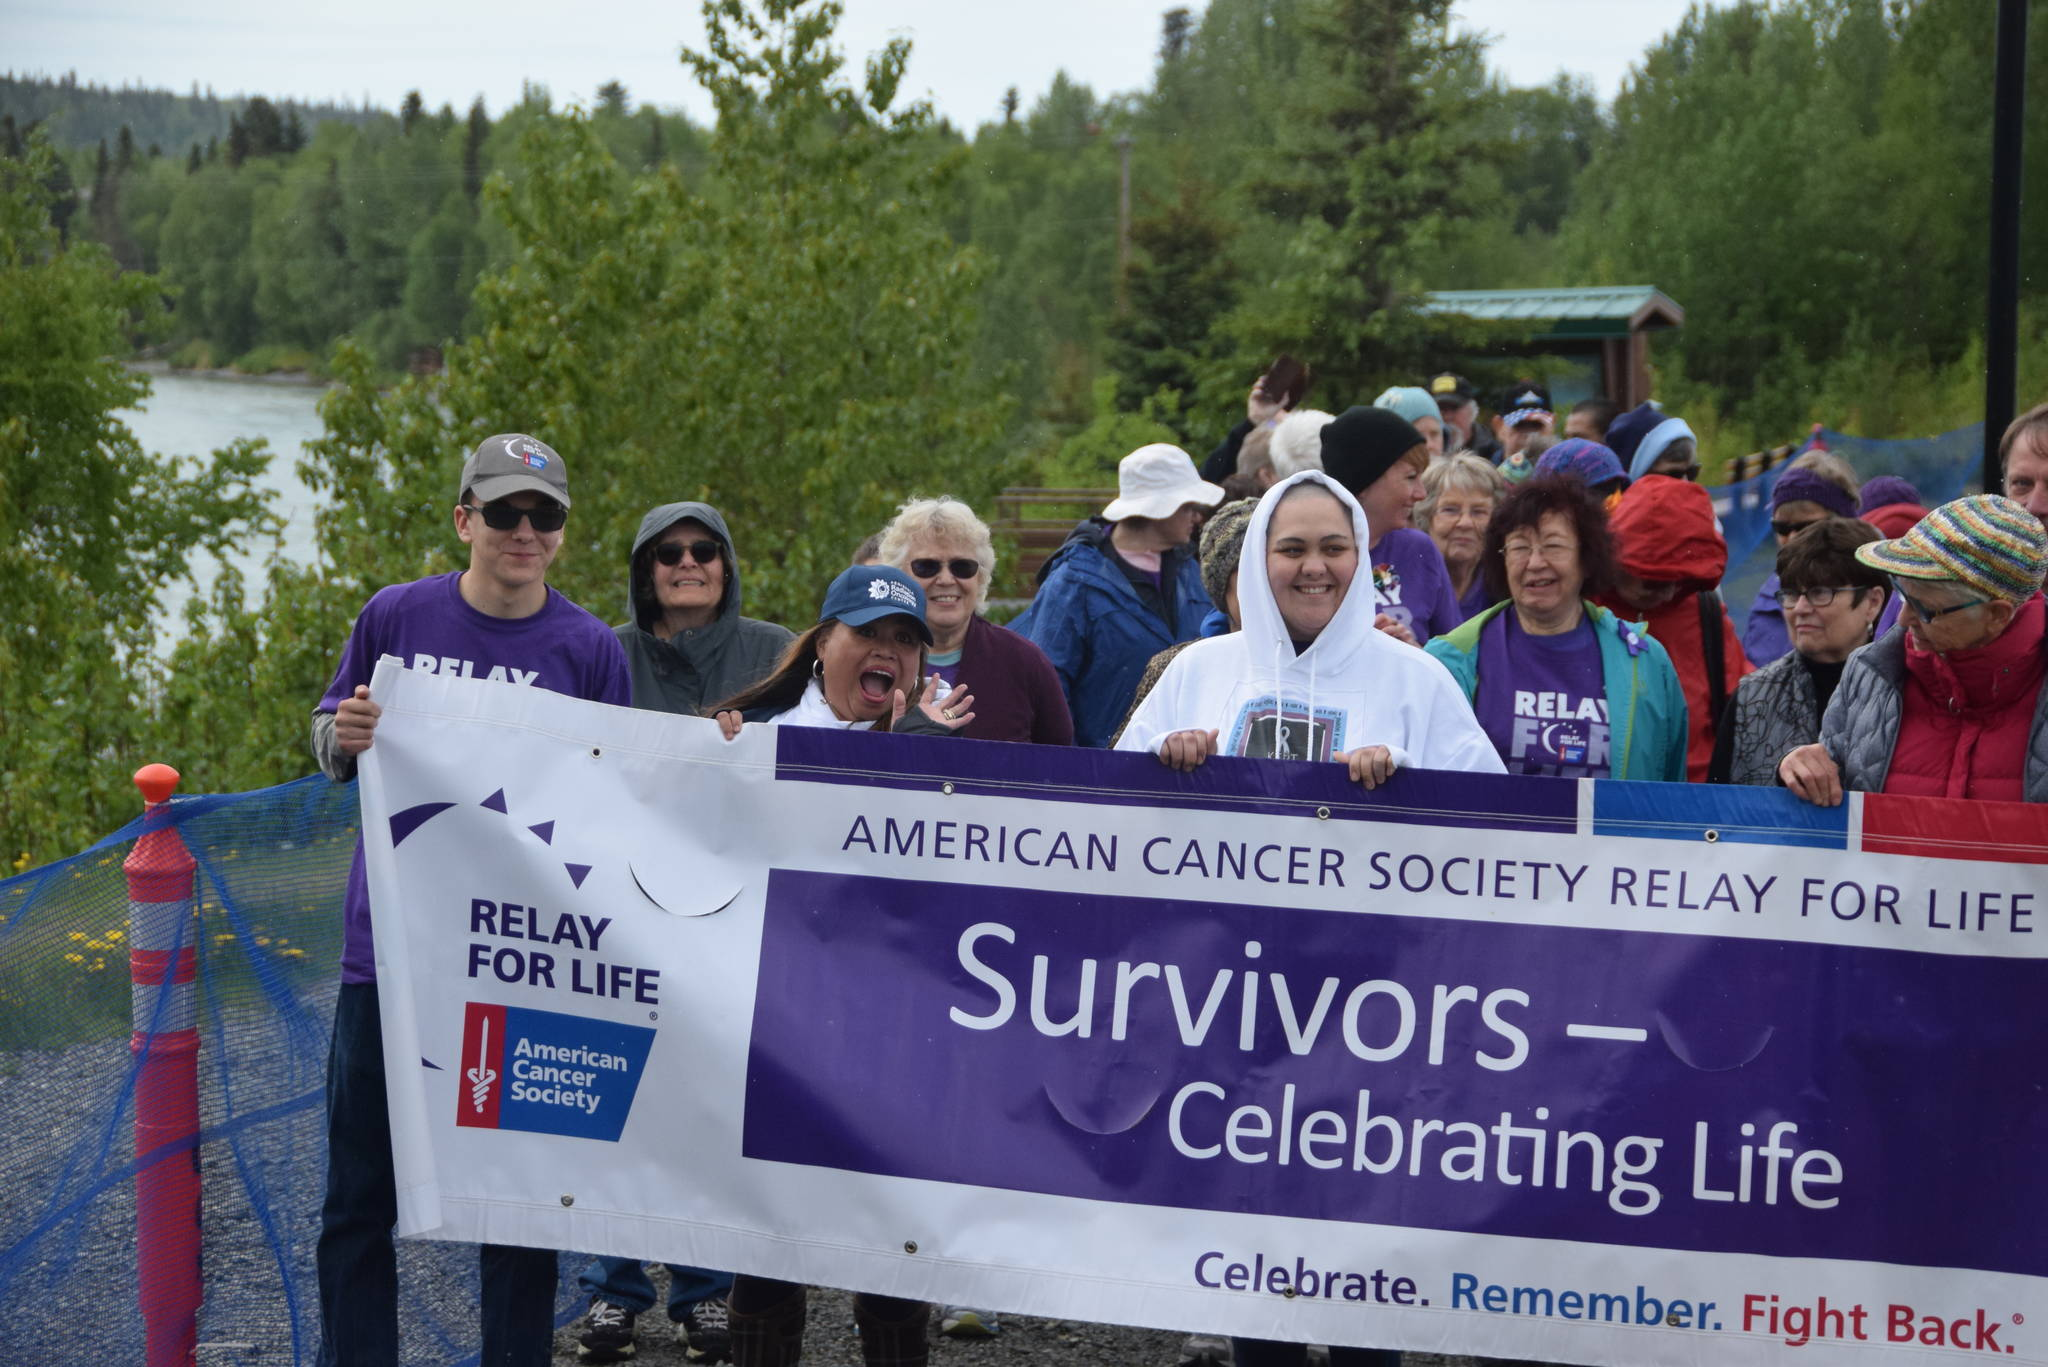 Participants at the 2019 Relay for Life of the Kenai Peninsula line up at Soldotna Creek Park on June 1, 2019 to start the survivor's walk, which is designated for cancer survivors and their caretakers. All those wearing purple shirts are cancer survivors, including Joseph Yourkoski, far left, a 17 year old at Nikiski High School. Eighteen teams raised over $25,000 at this year's event, which featured live entertainment, face painting and a pancake eating contest. (Photo by Brian Mazurek/Peninsula Clarion)